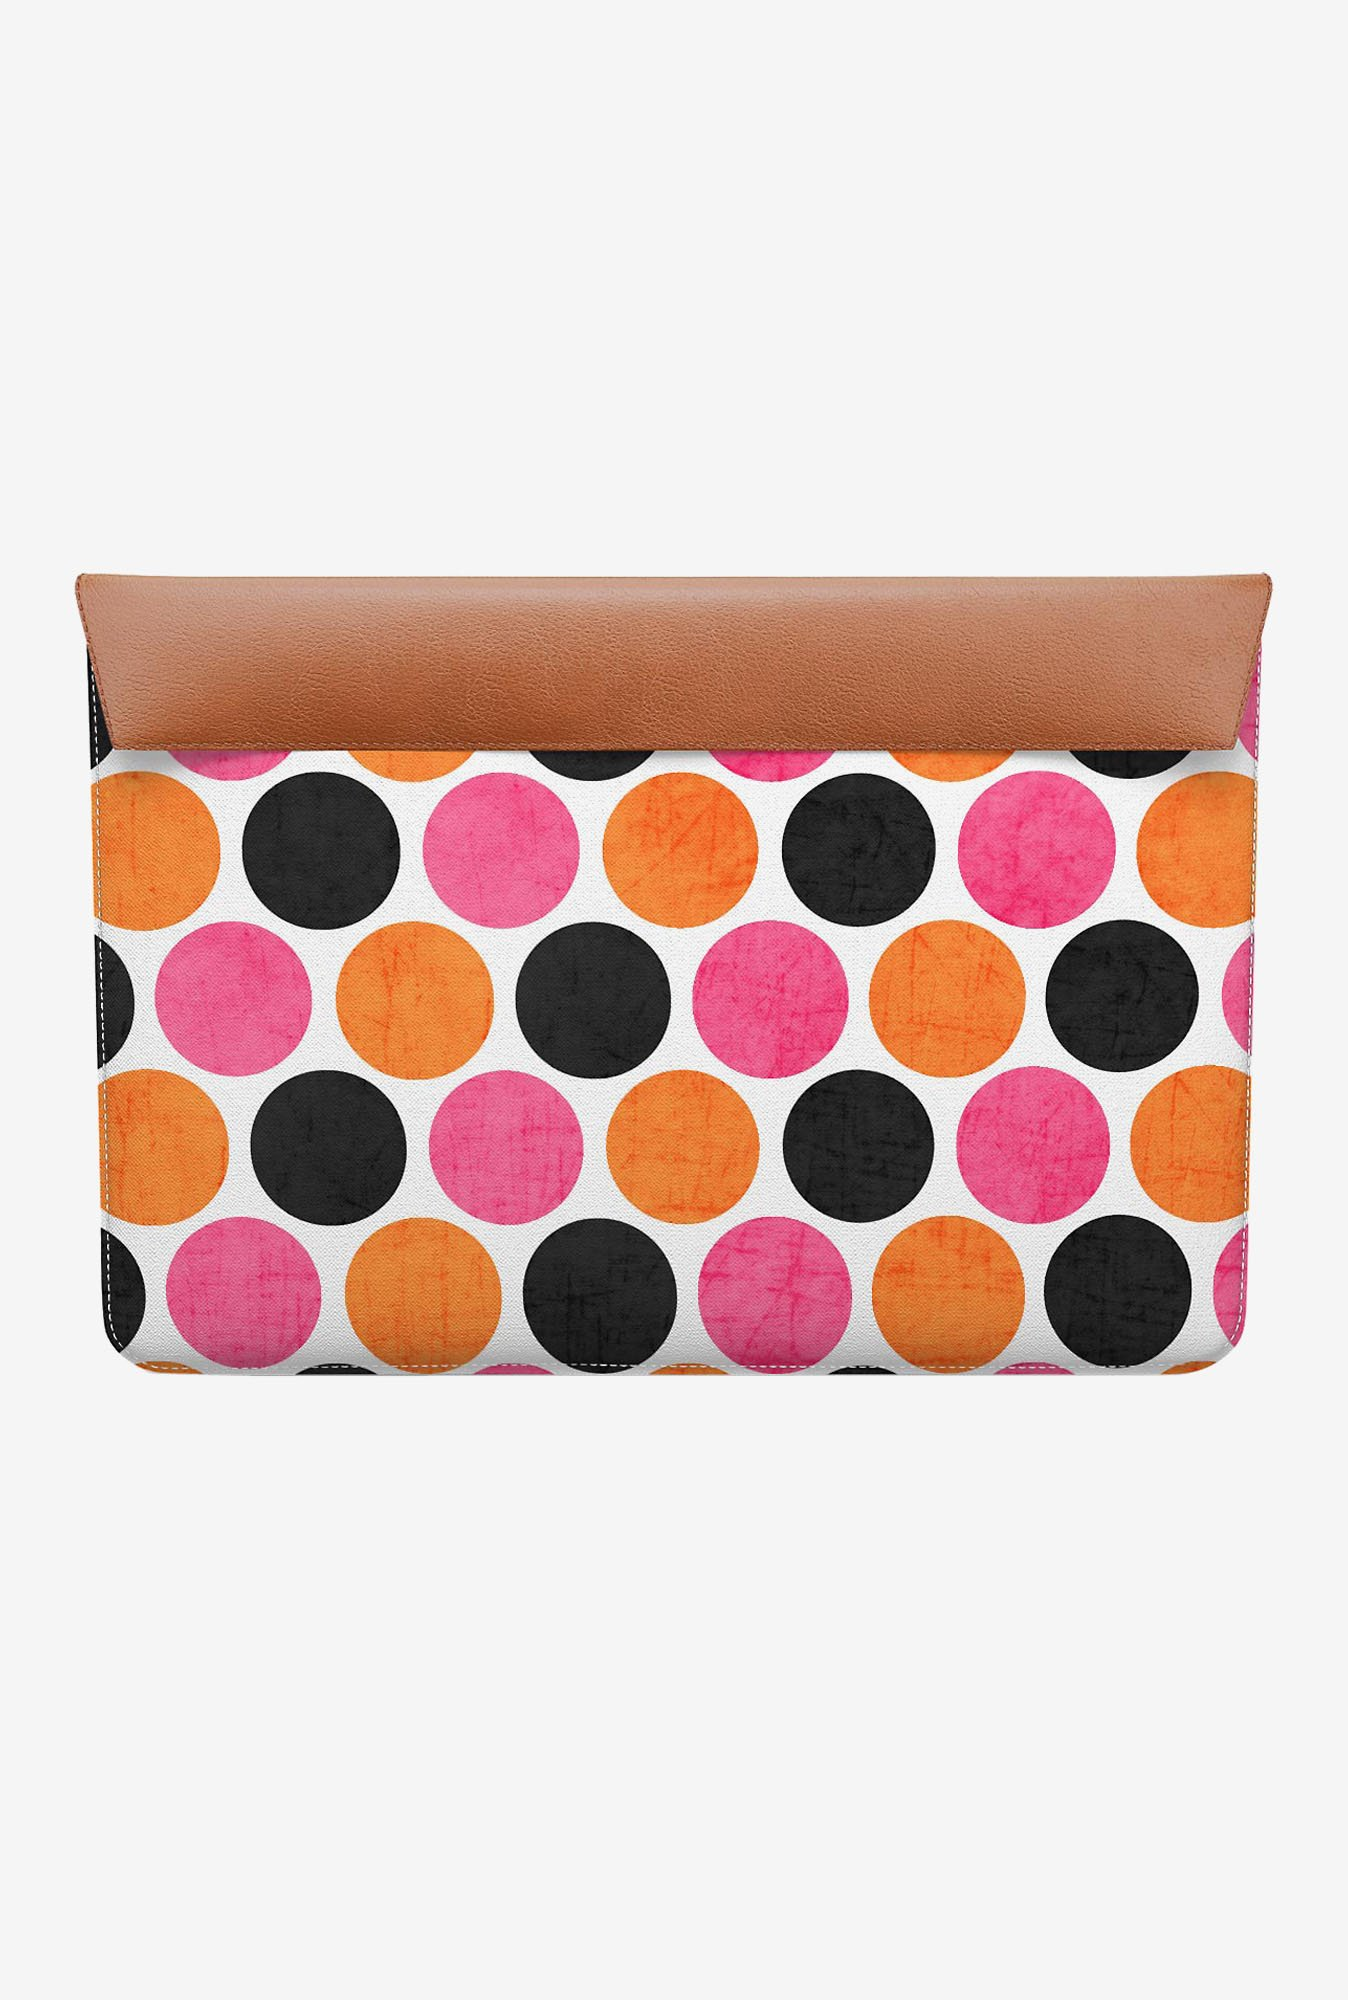 DailyObjects Polka Dots MacBook Air 13 Envelope Sleeve